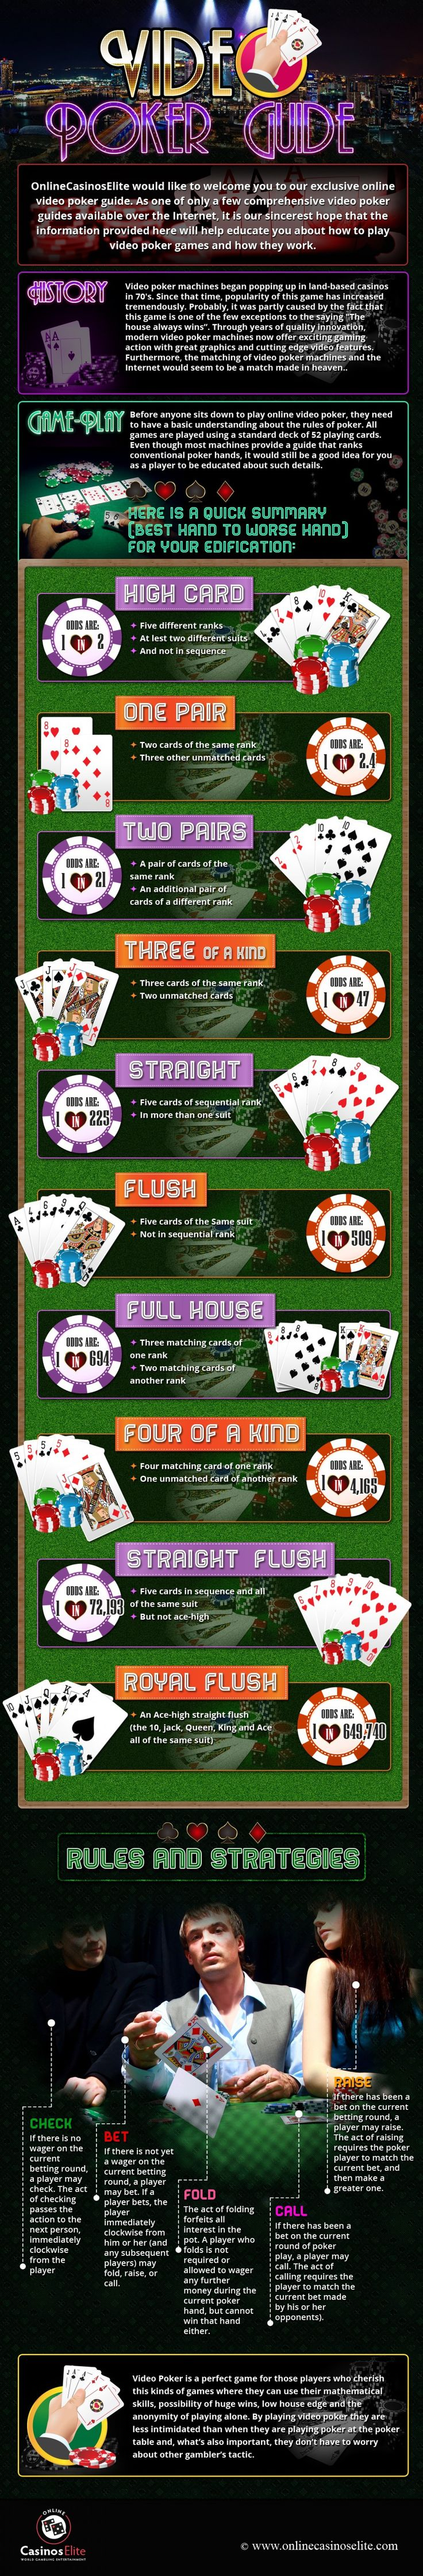 casino poker online heart spielen